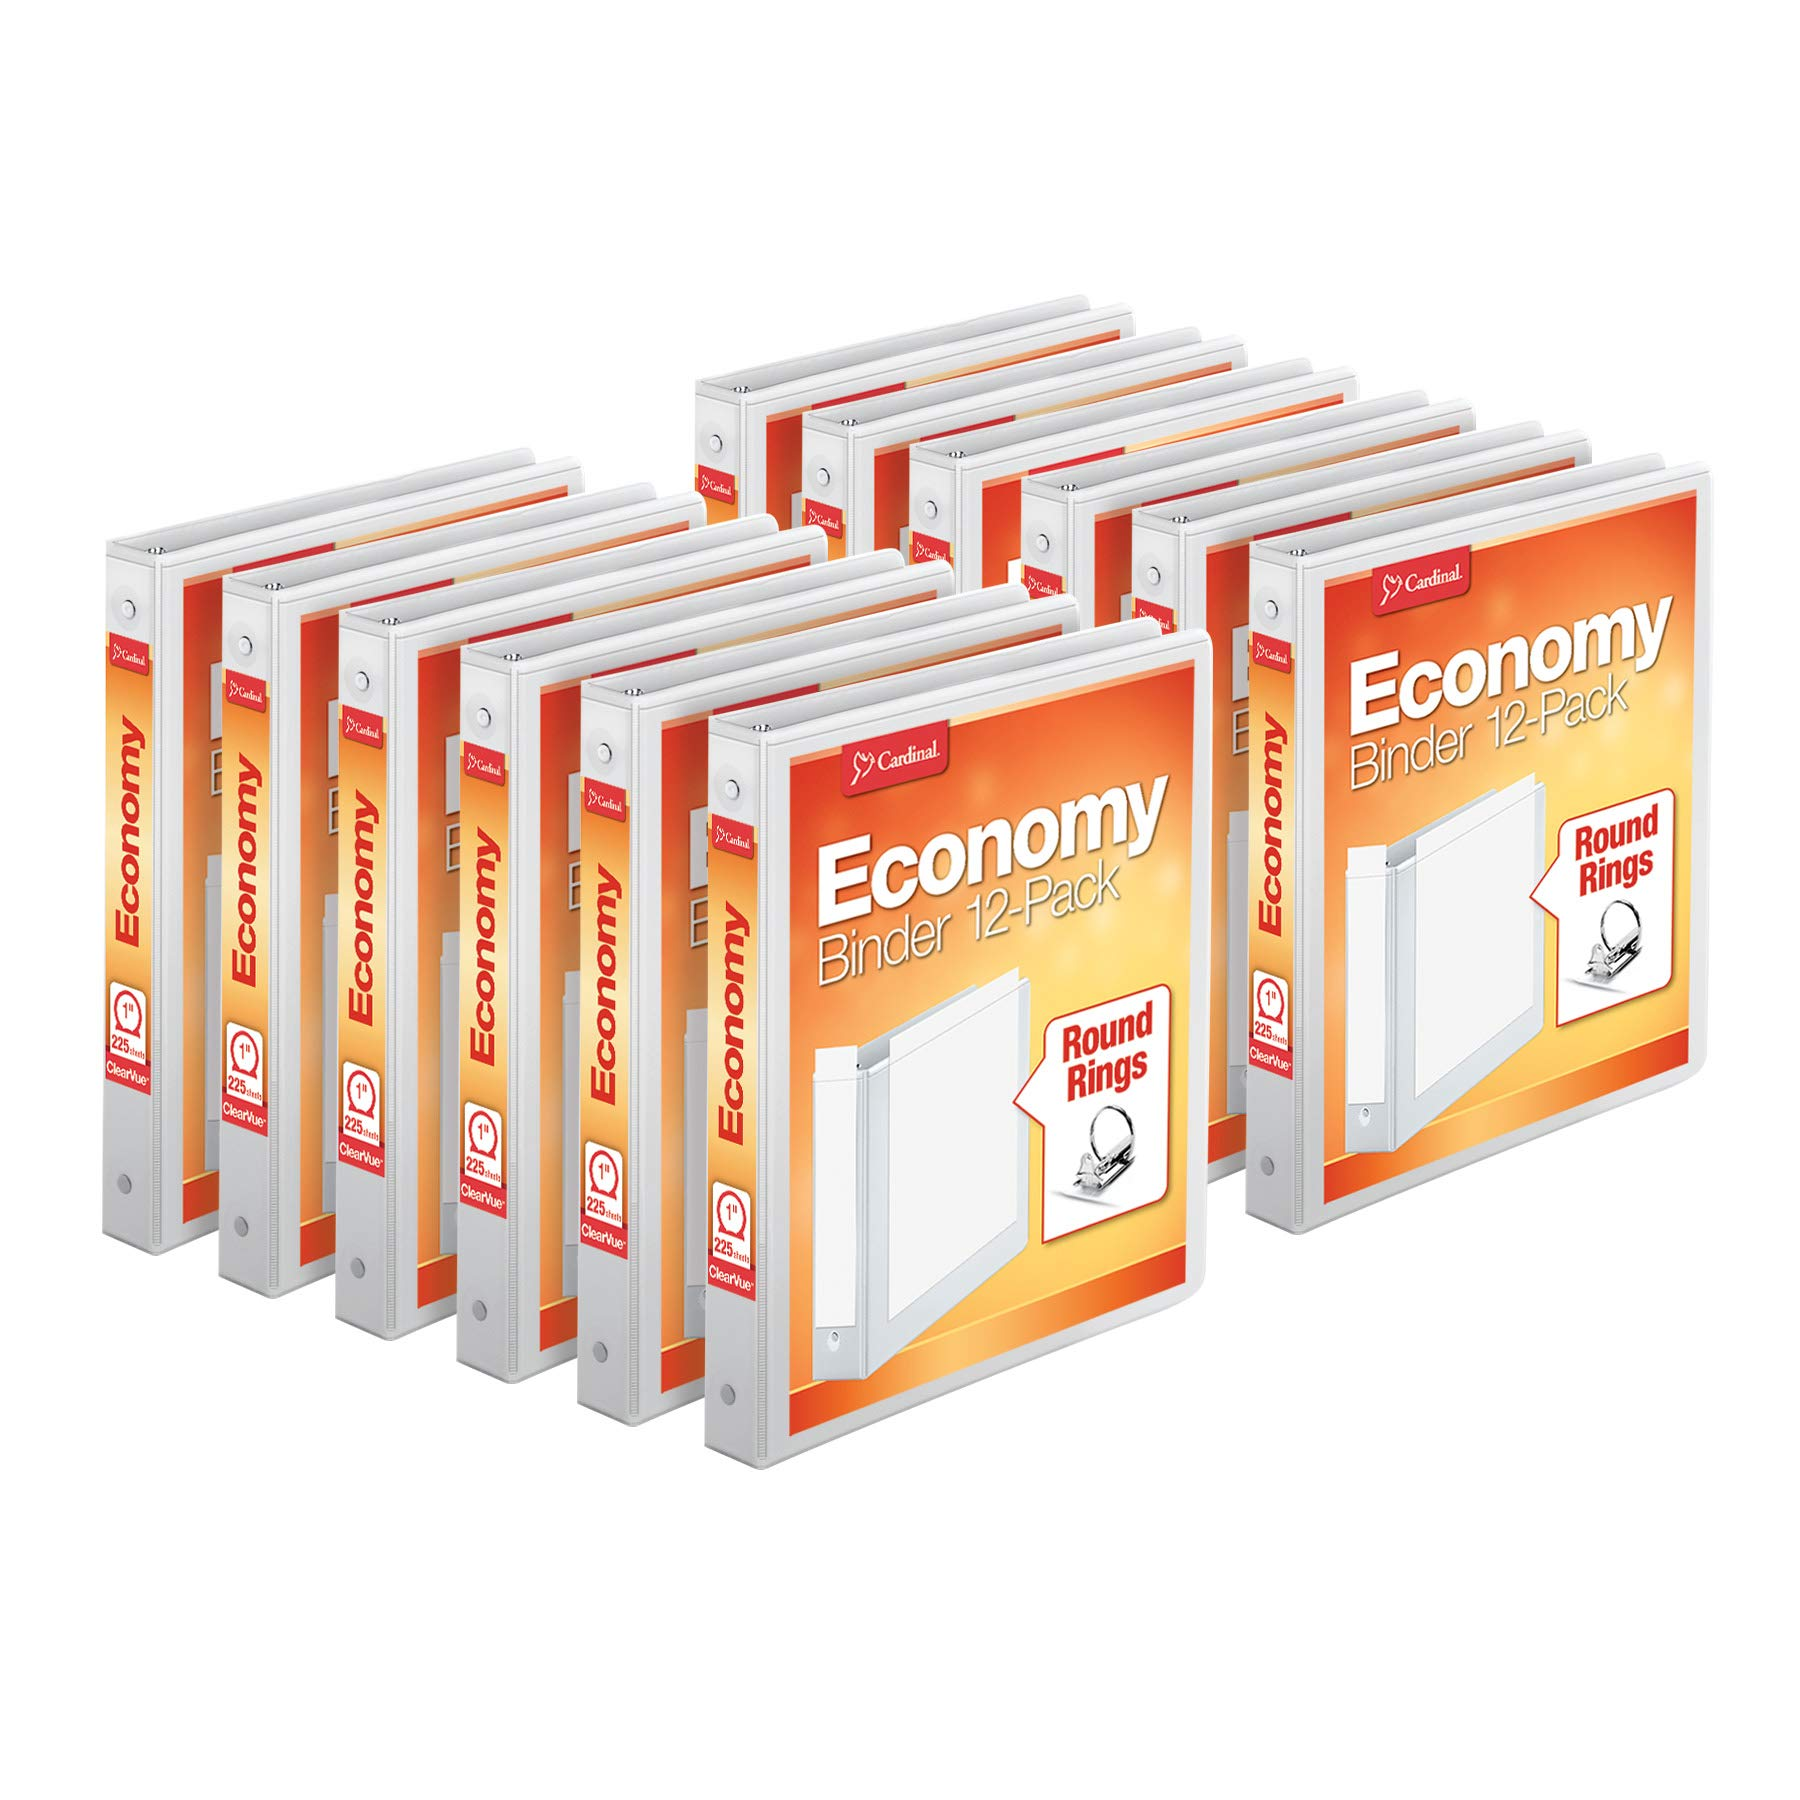 Cardinal Economy 3-Ring Binders, 1'', Round Rings, Holds 225 Sheets, ClearVue Presentation View, Non-Stick, White, Carton of 12 (90621) by Cardinal